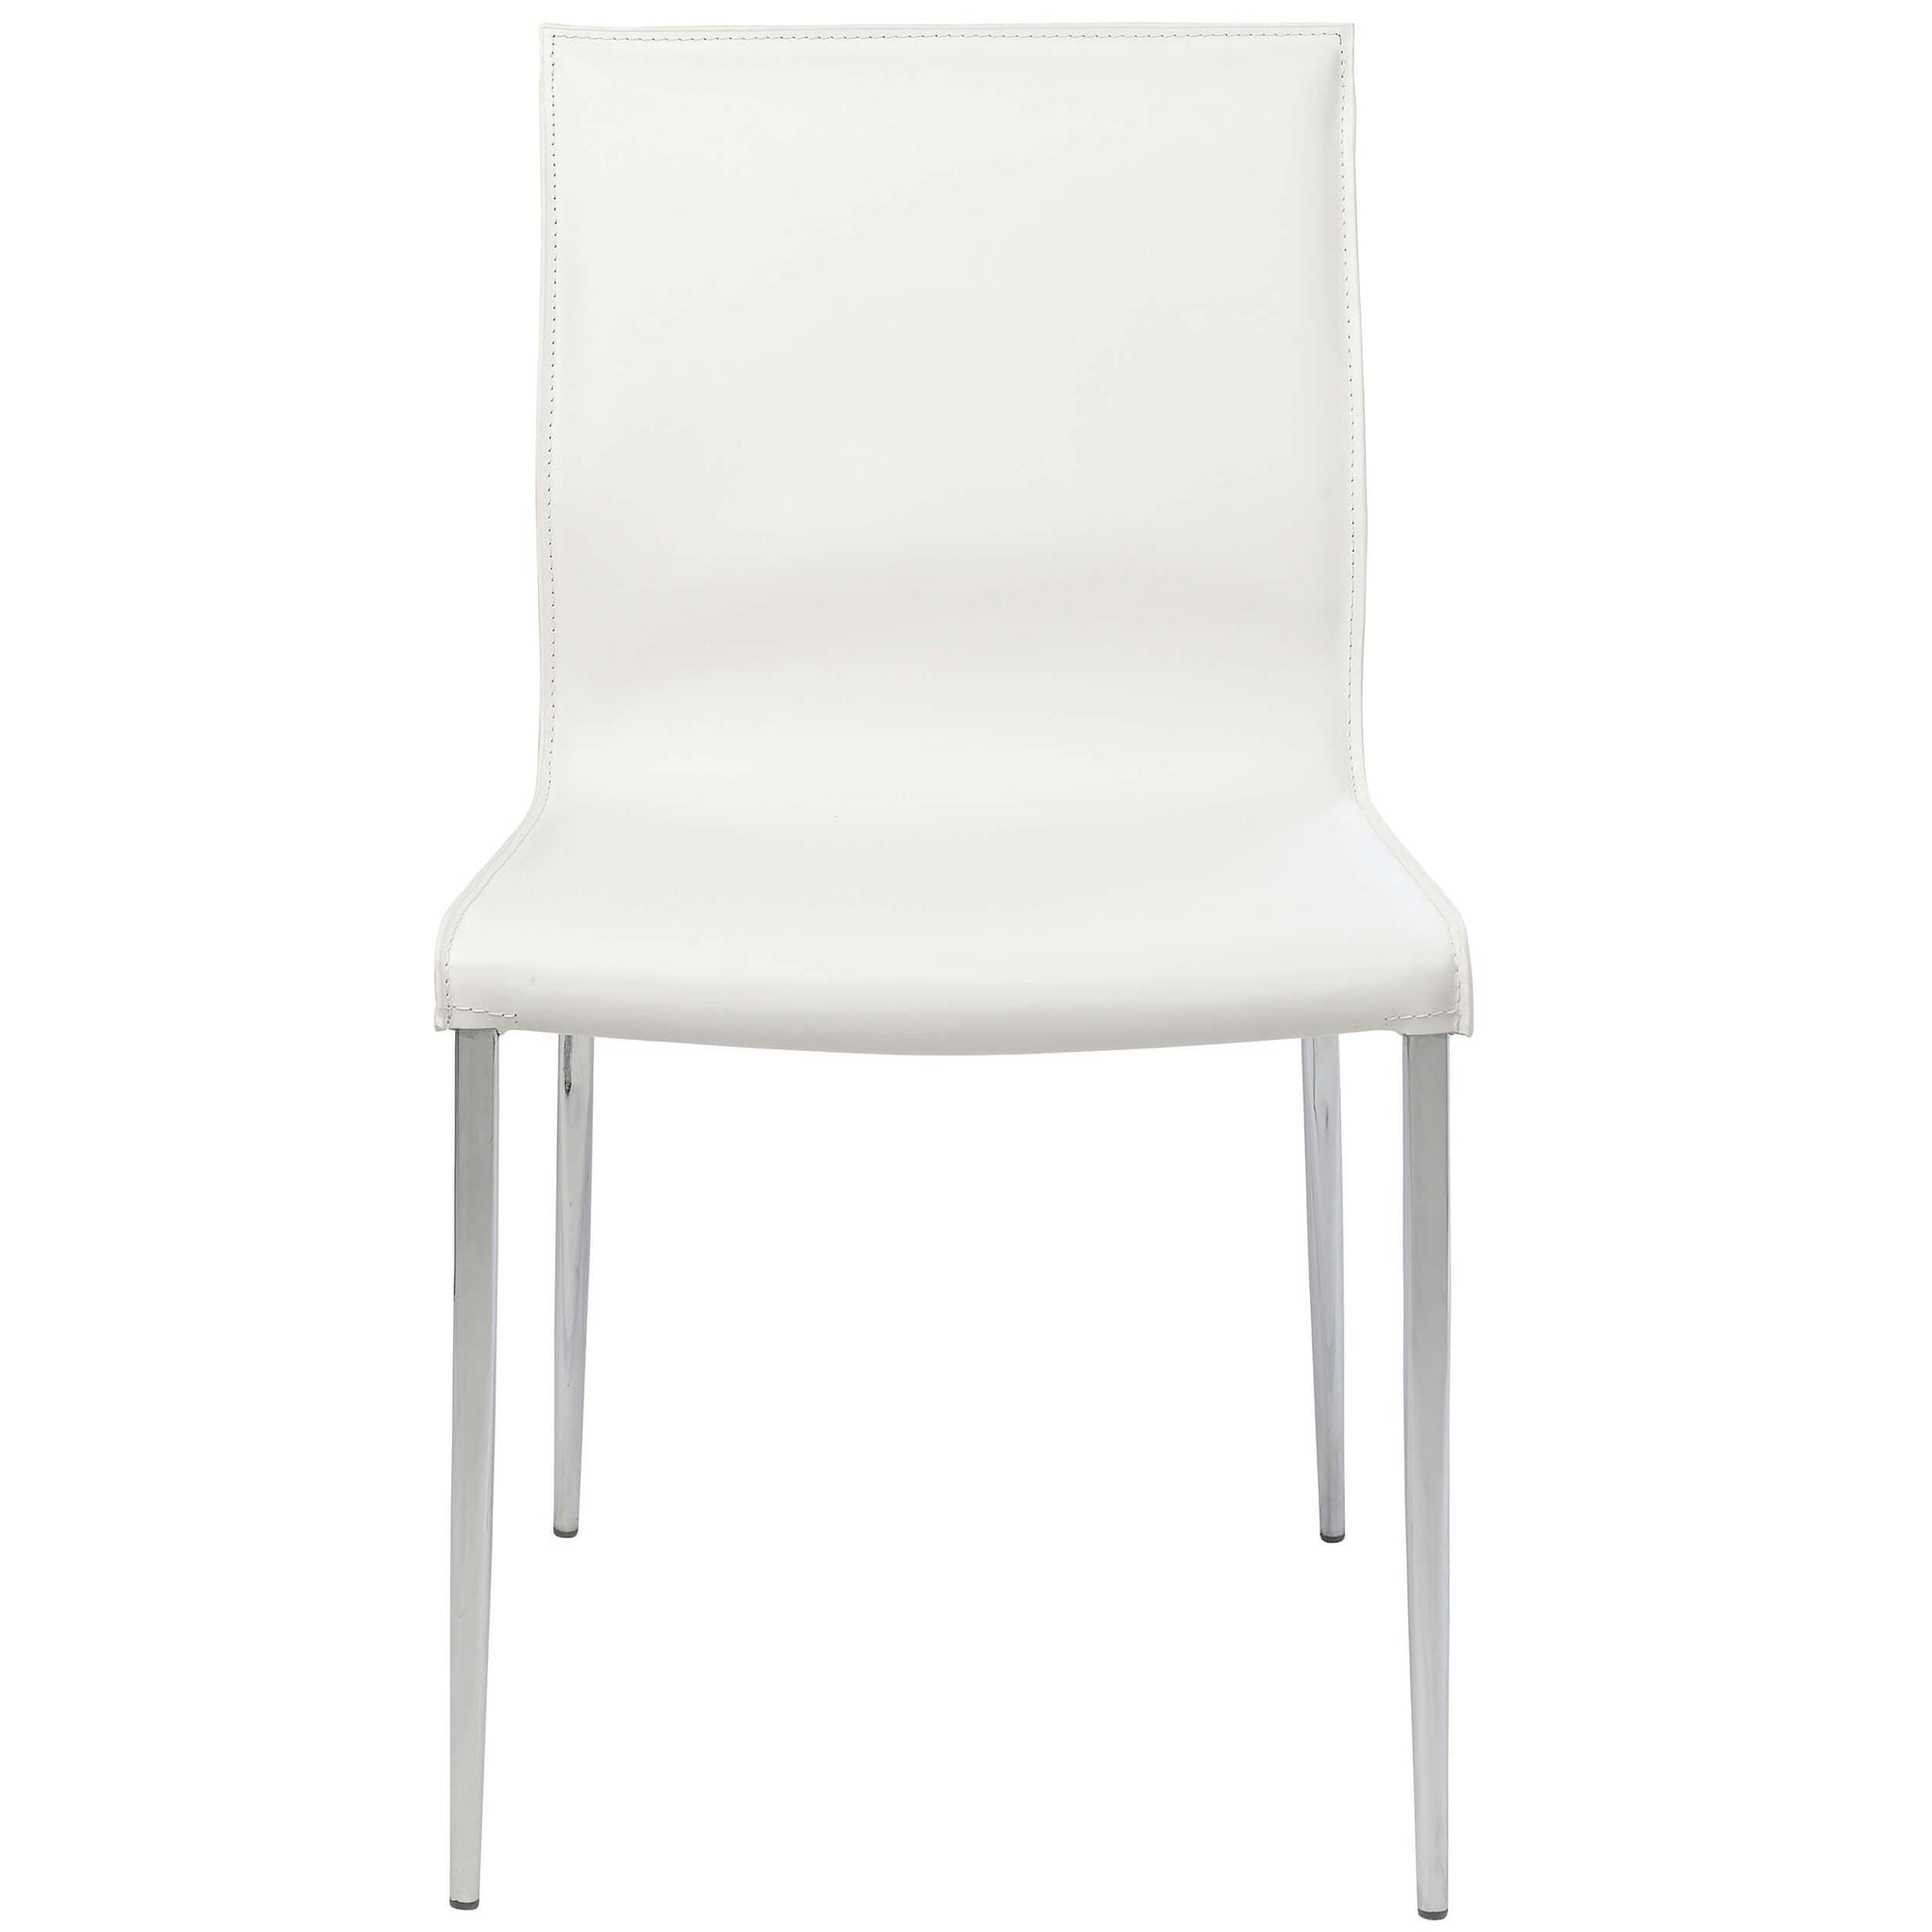 Peachy Colter Leather Dining Chair White Chrome Legs High Beatyapartments Chair Design Images Beatyapartmentscom